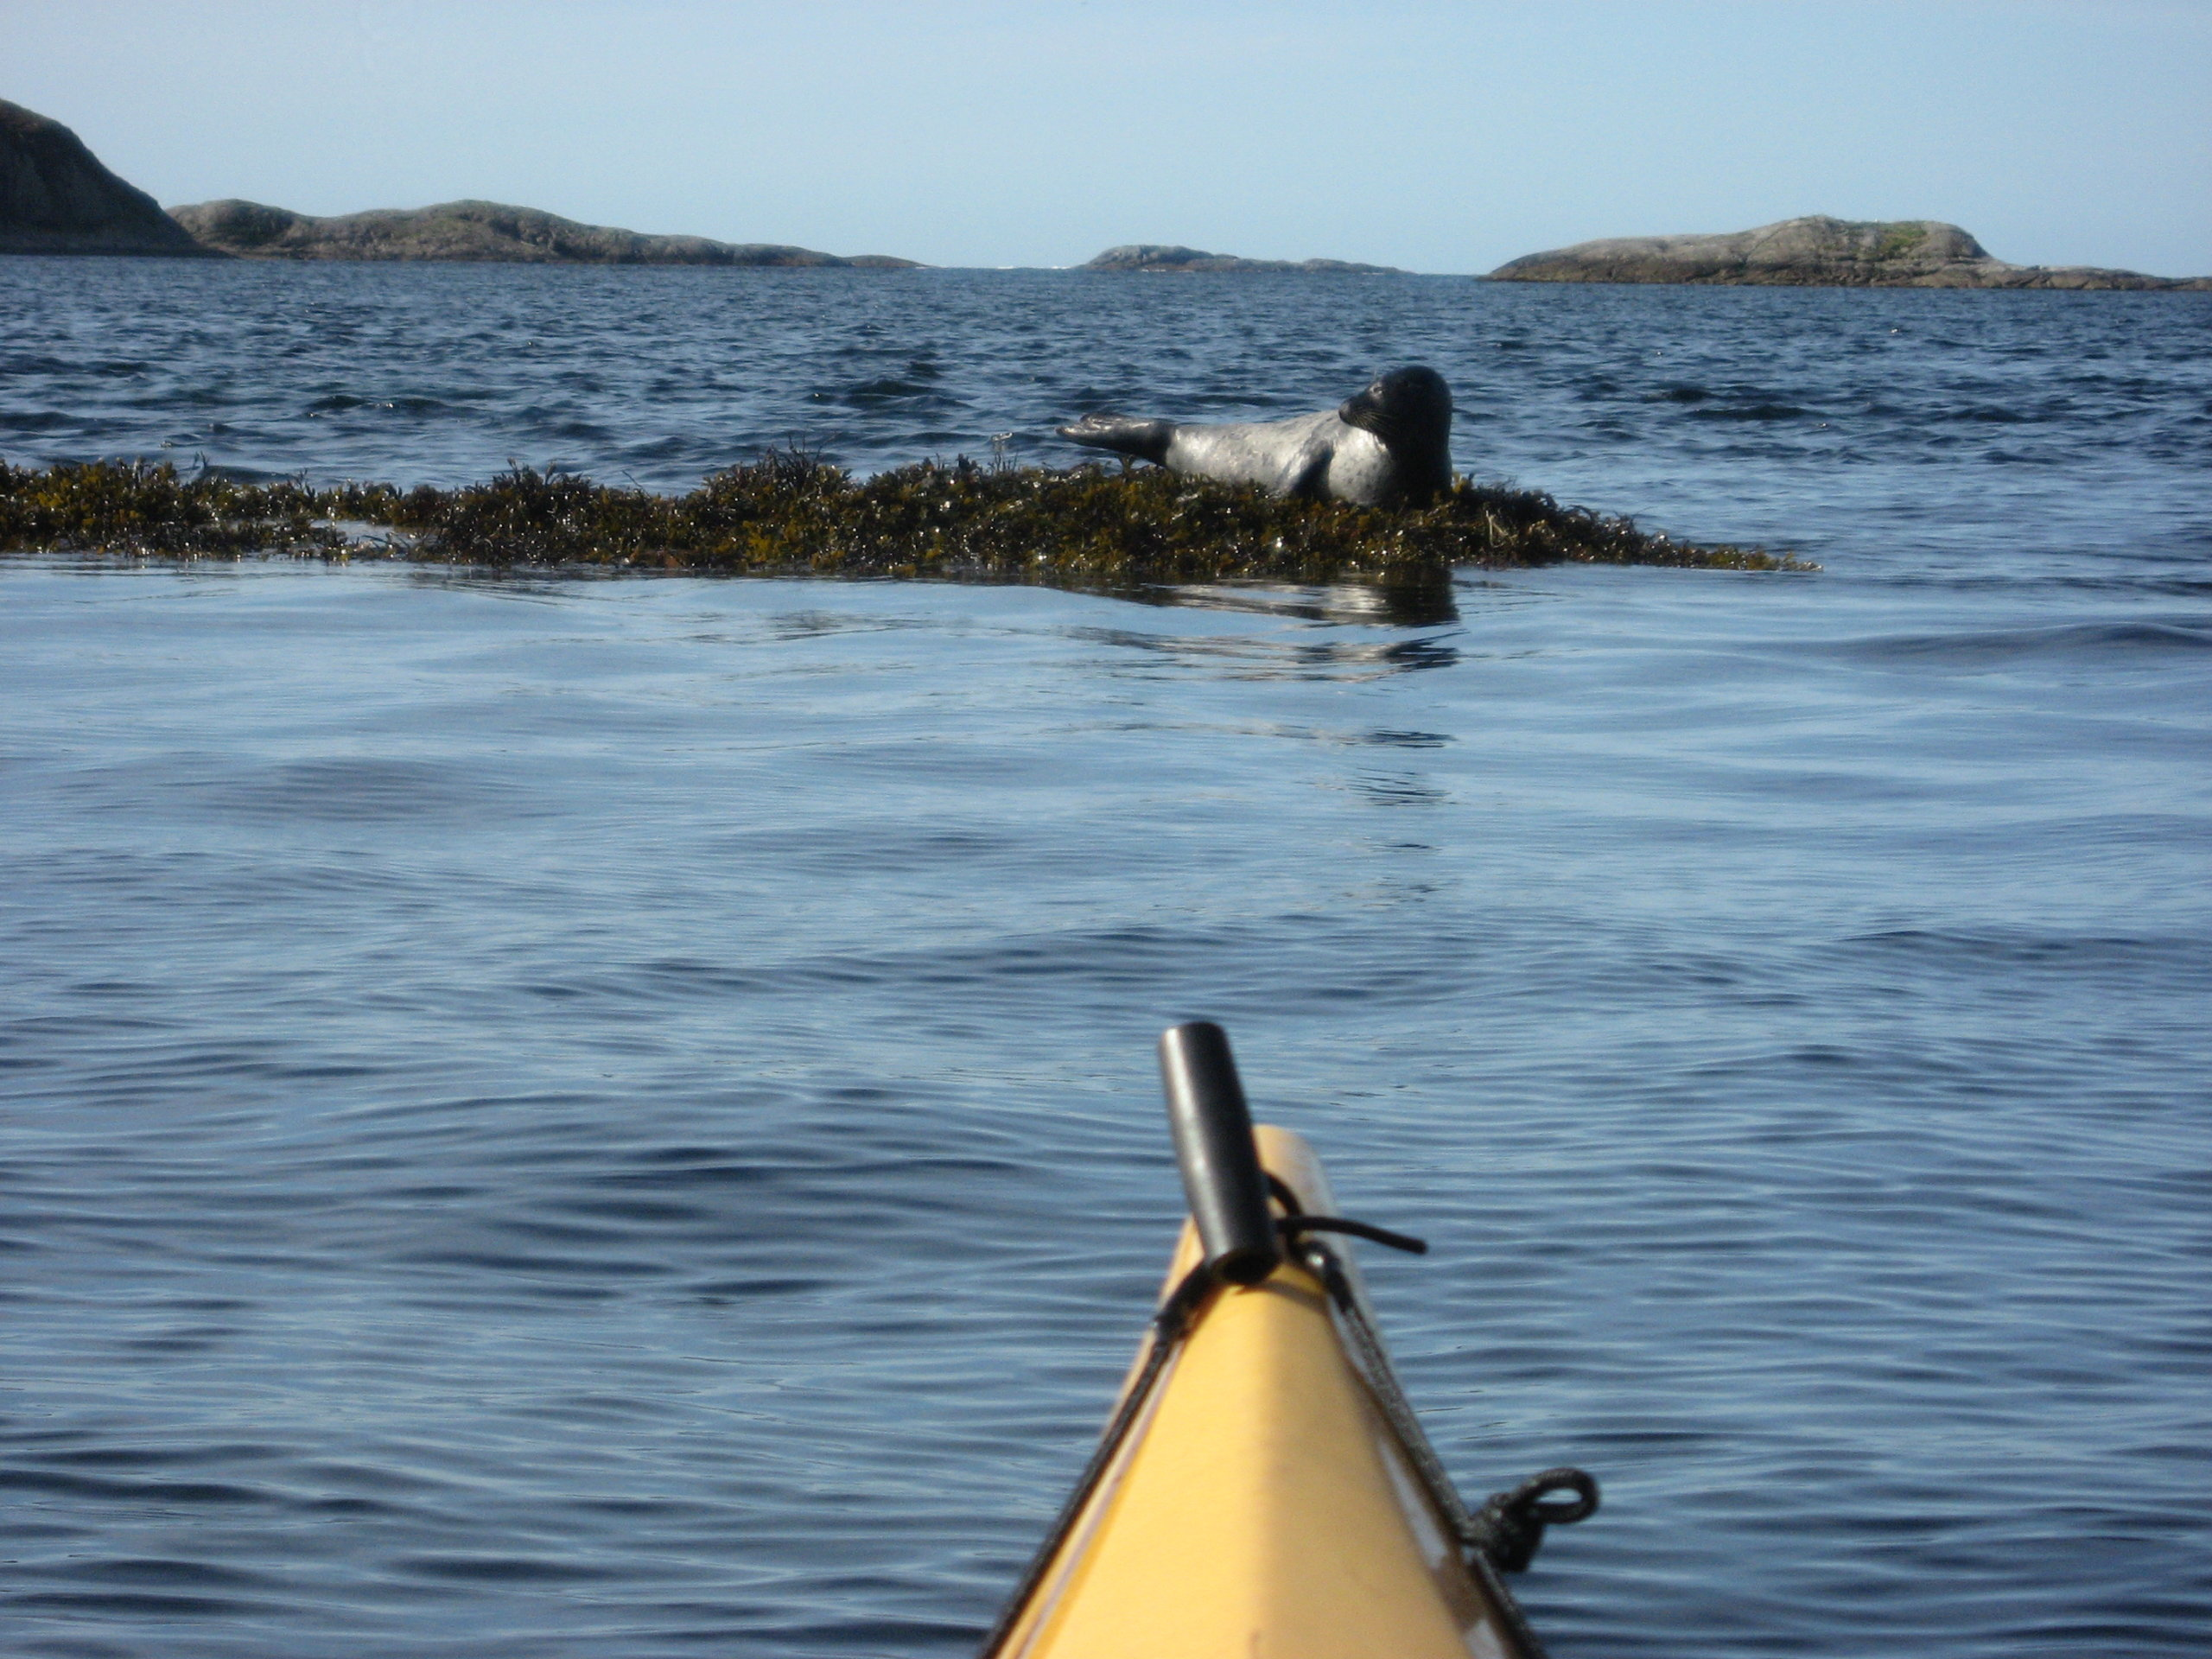 Spotting a seal during the kayak trip